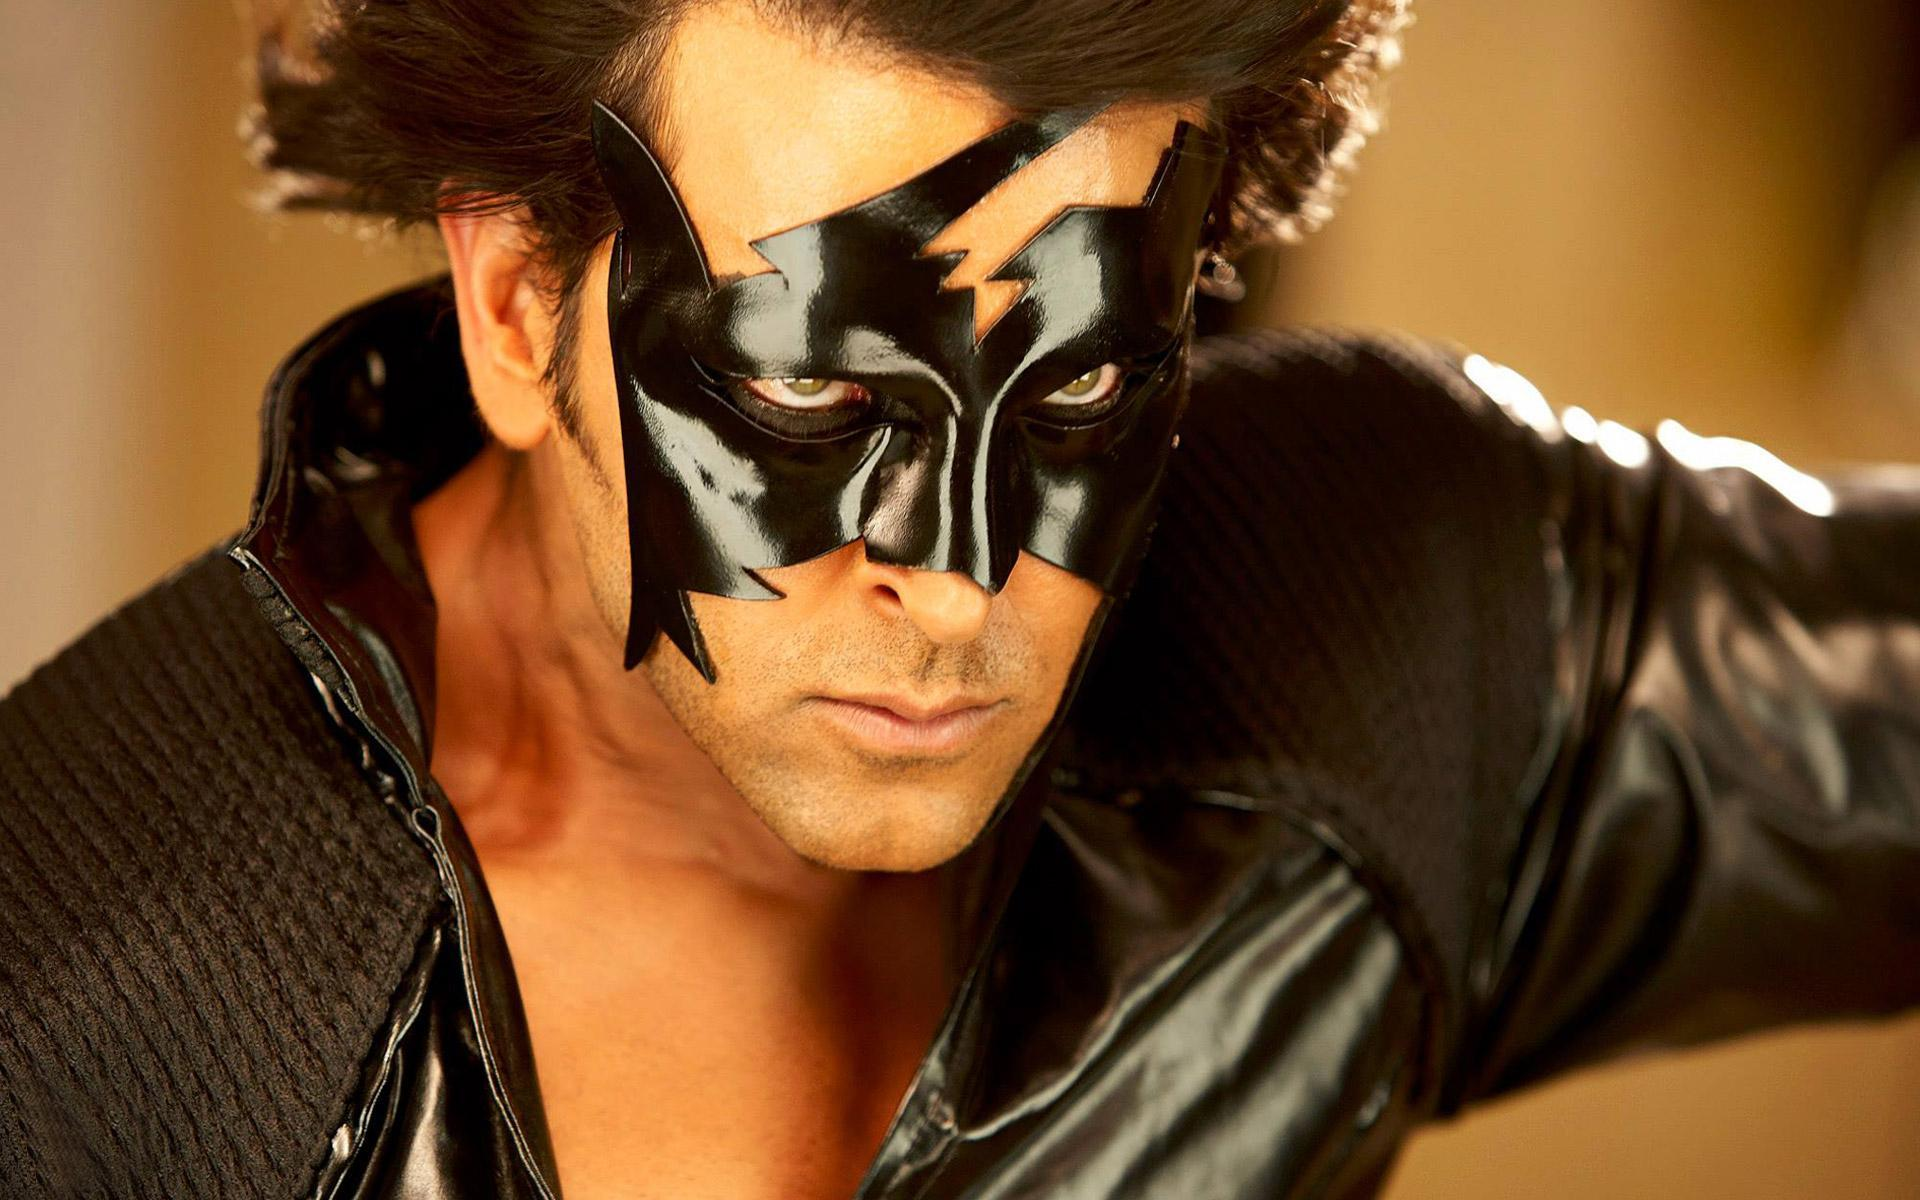 Hrithik Roshan Hd Wallpapers Krrish 3